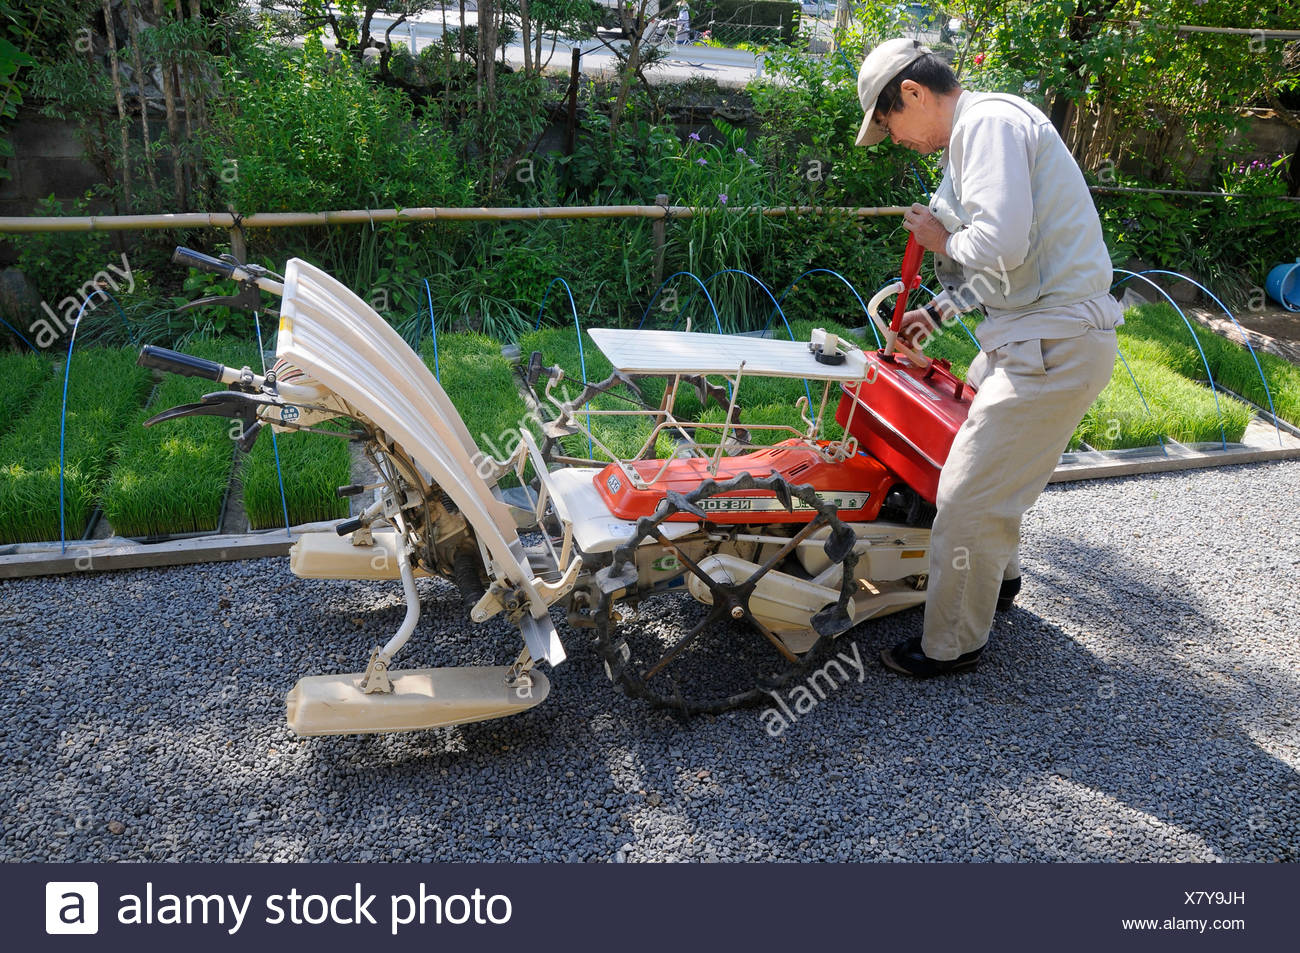 Rice farmer giving his rice-planting machine an overhaul, rice shoots in the back, Iwakura, Kyoto, Japan, Asia - Stock Image